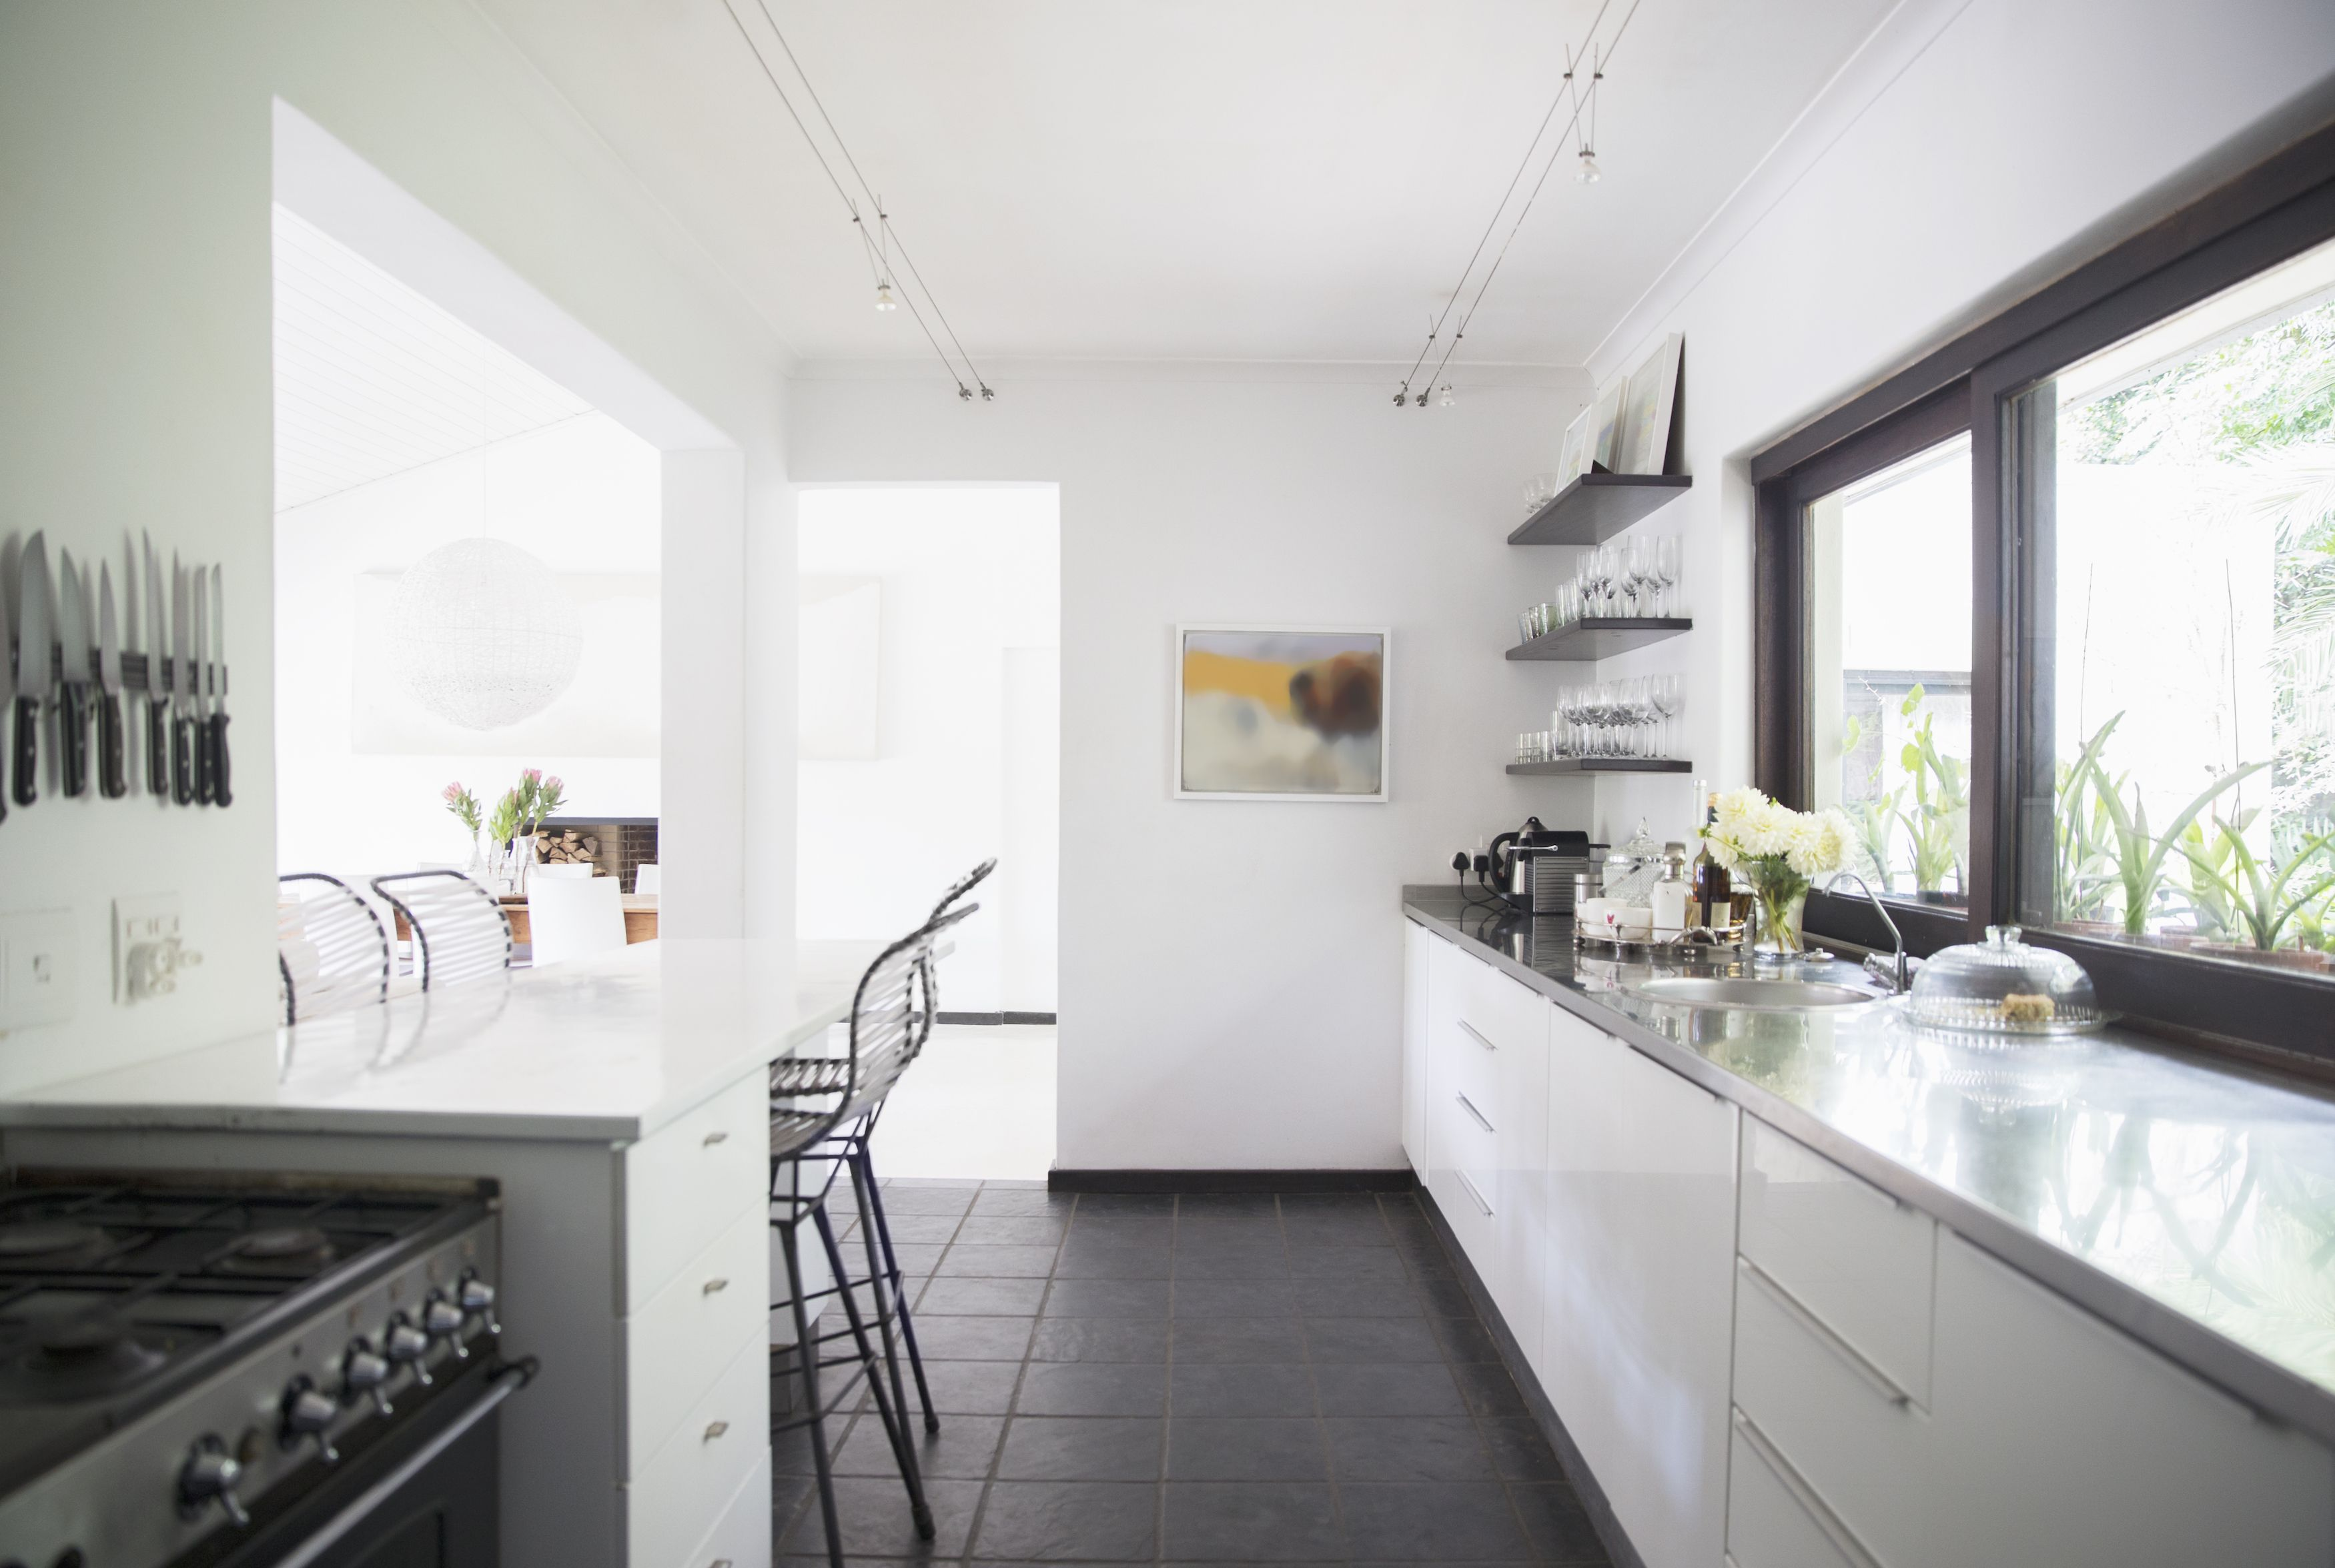 Best Kitchen Gallery: 17 Galley Kitchen Design Ideas Layout And Remodel Tips For Small of Small White Galley Kitchen on rachelxblog.com